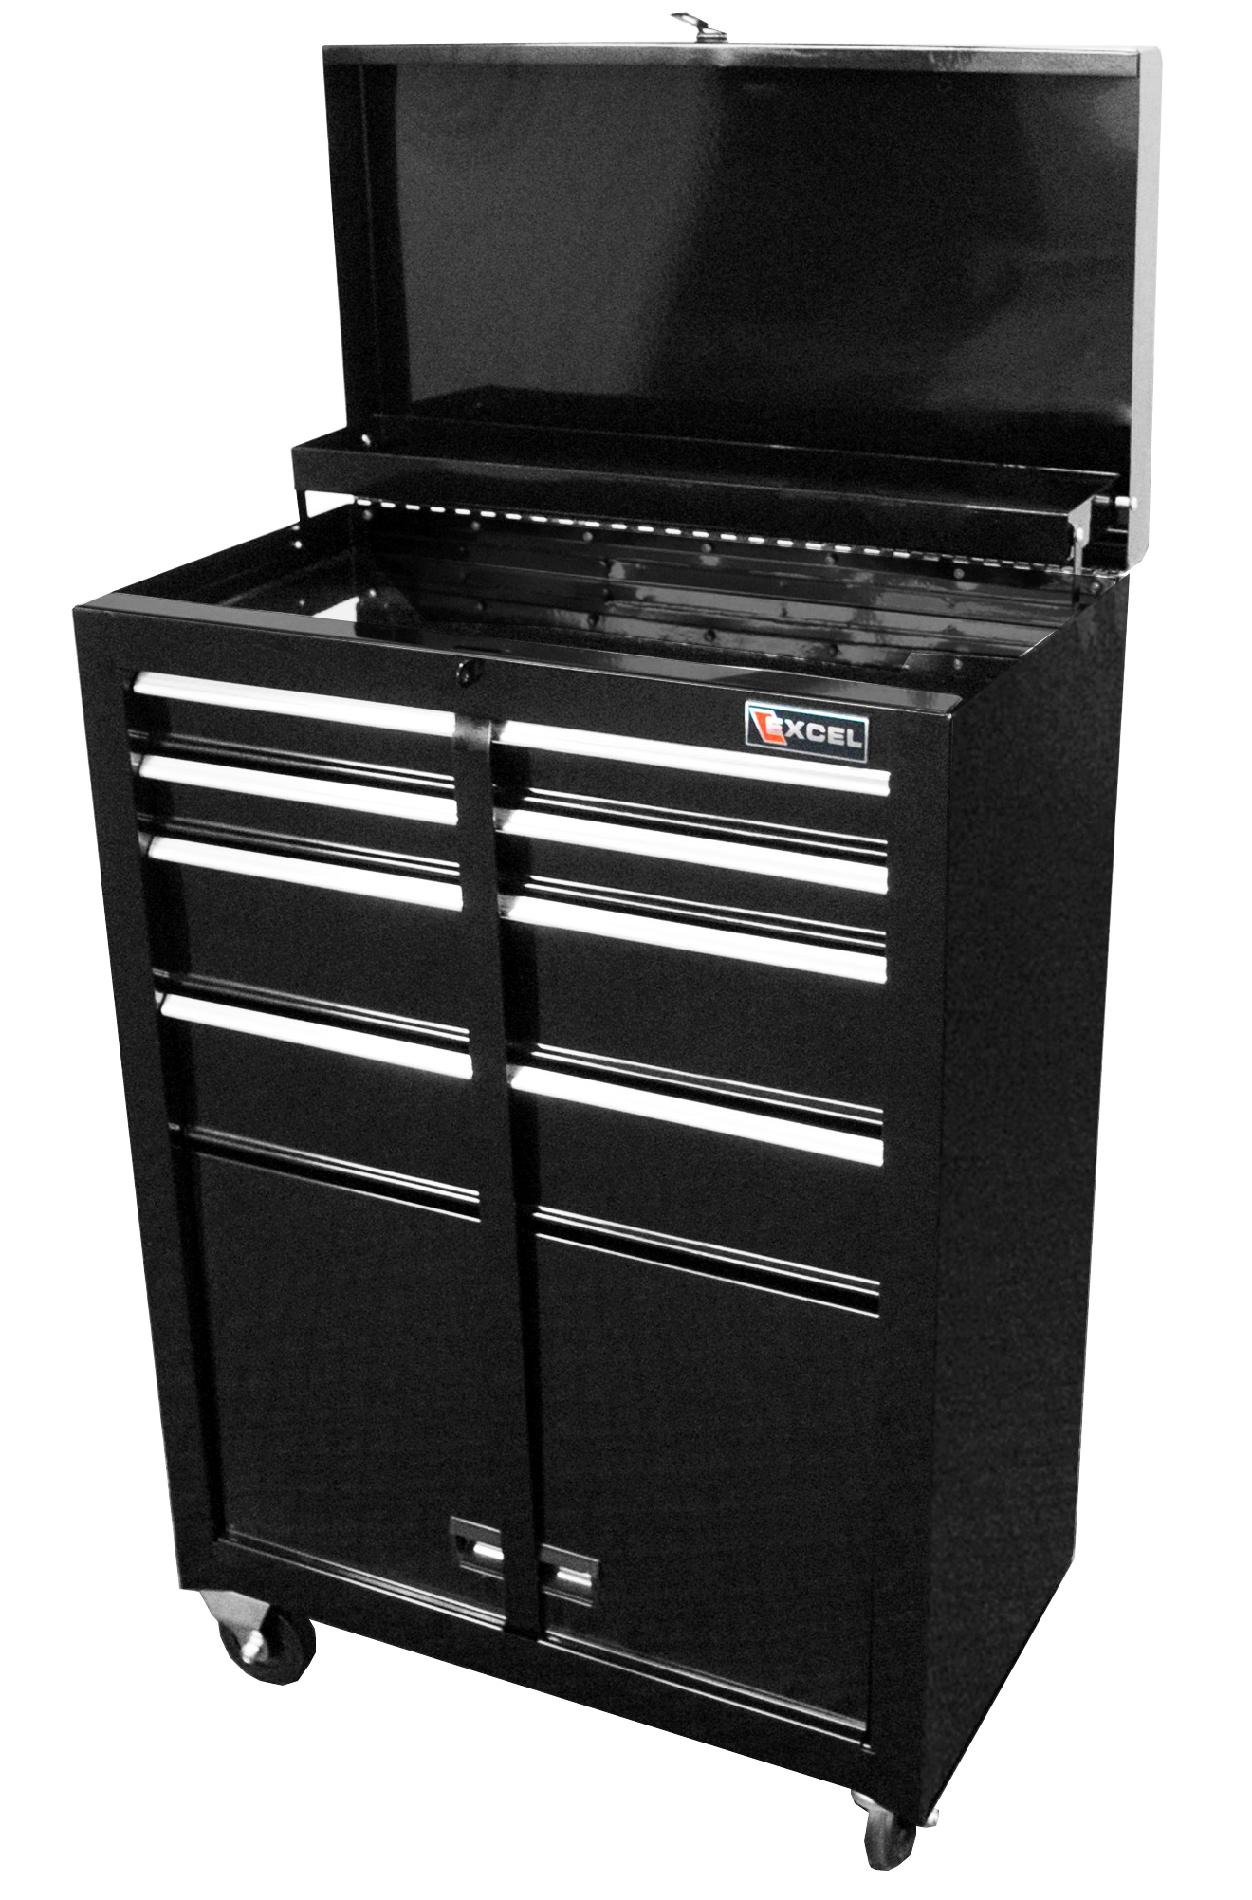 Excel 22 in. Steel Roller Cabinet with Storage Compartment